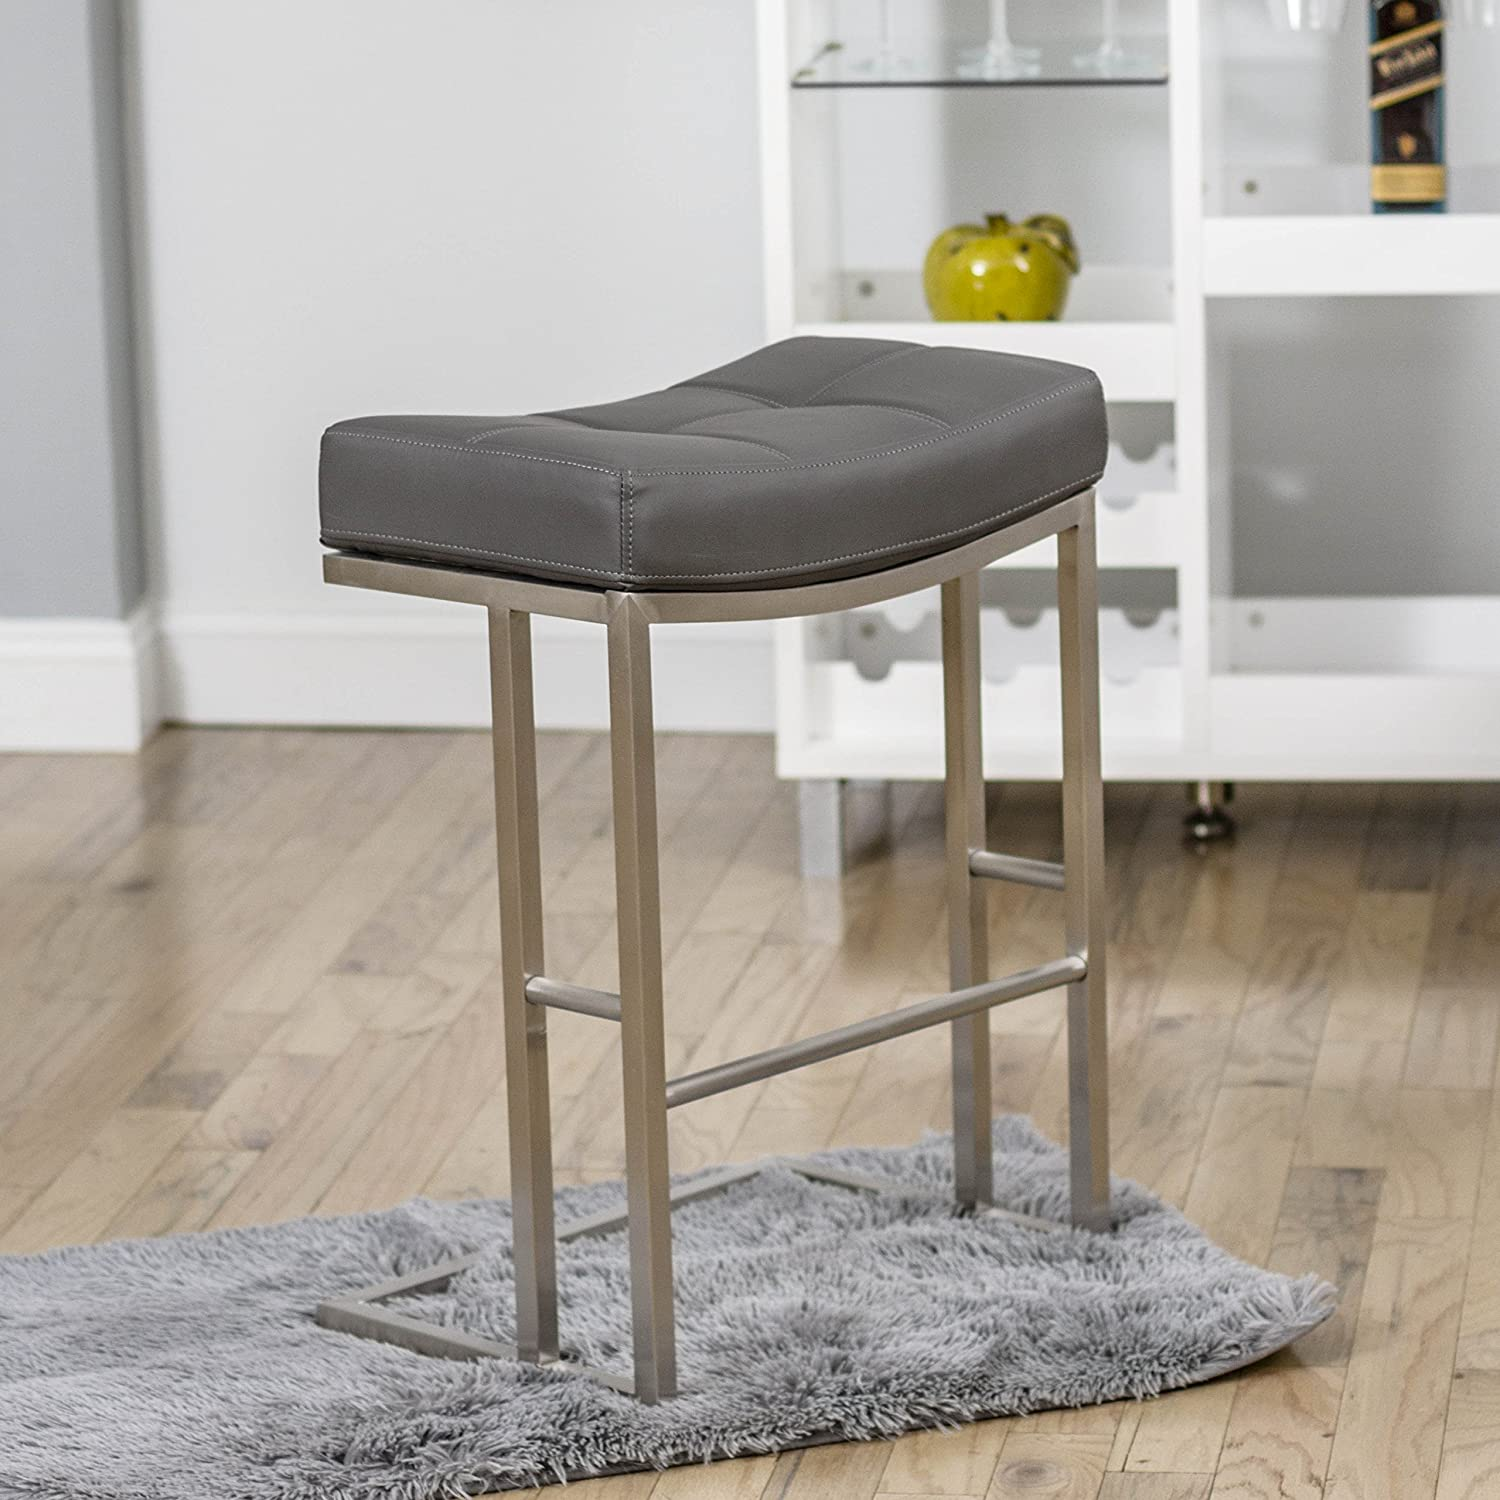 Amazon.com MIX Brushed Stainless Steel Faux Leather Grey 26-inch Seat Height Stationary Saddle Bar Stool Kitchen u0026 Dining & Amazon.com: MIX Brushed Stainless Steel Faux Leather Grey 26-inch ... islam-shia.org